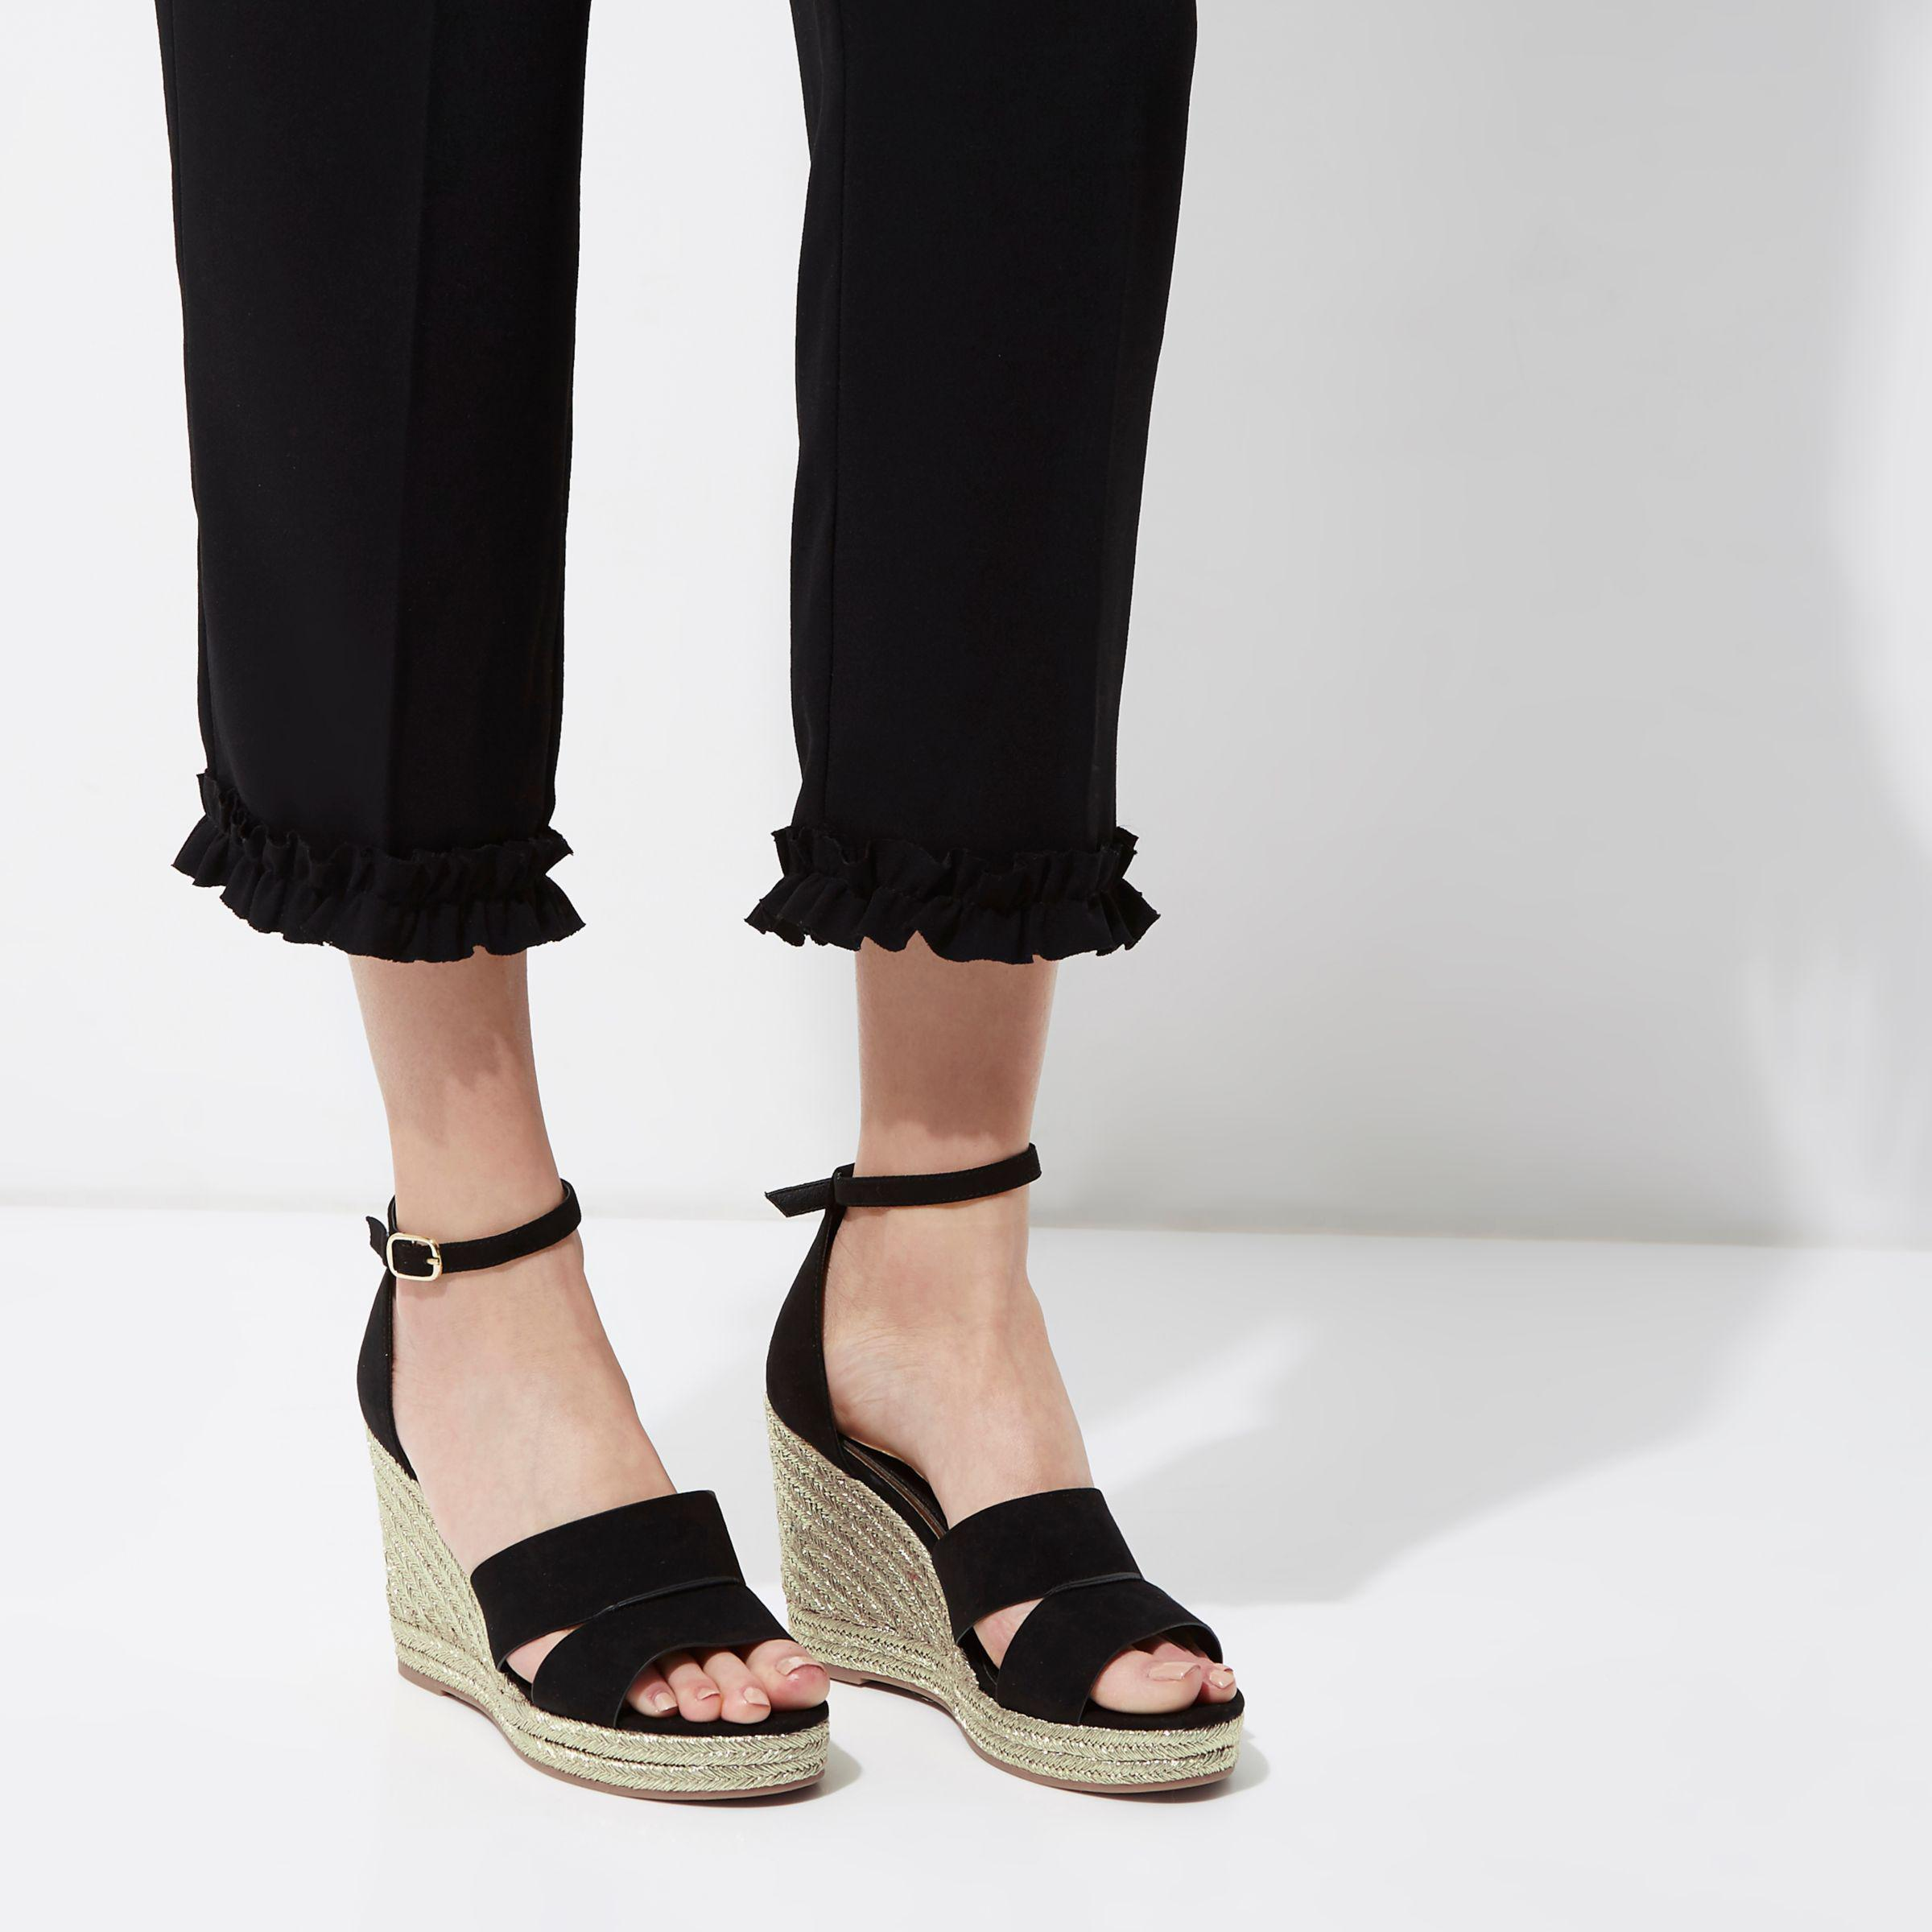 de77d737a2a River Island Black Strappy Gold Espadrille Wedges in Black - Lyst